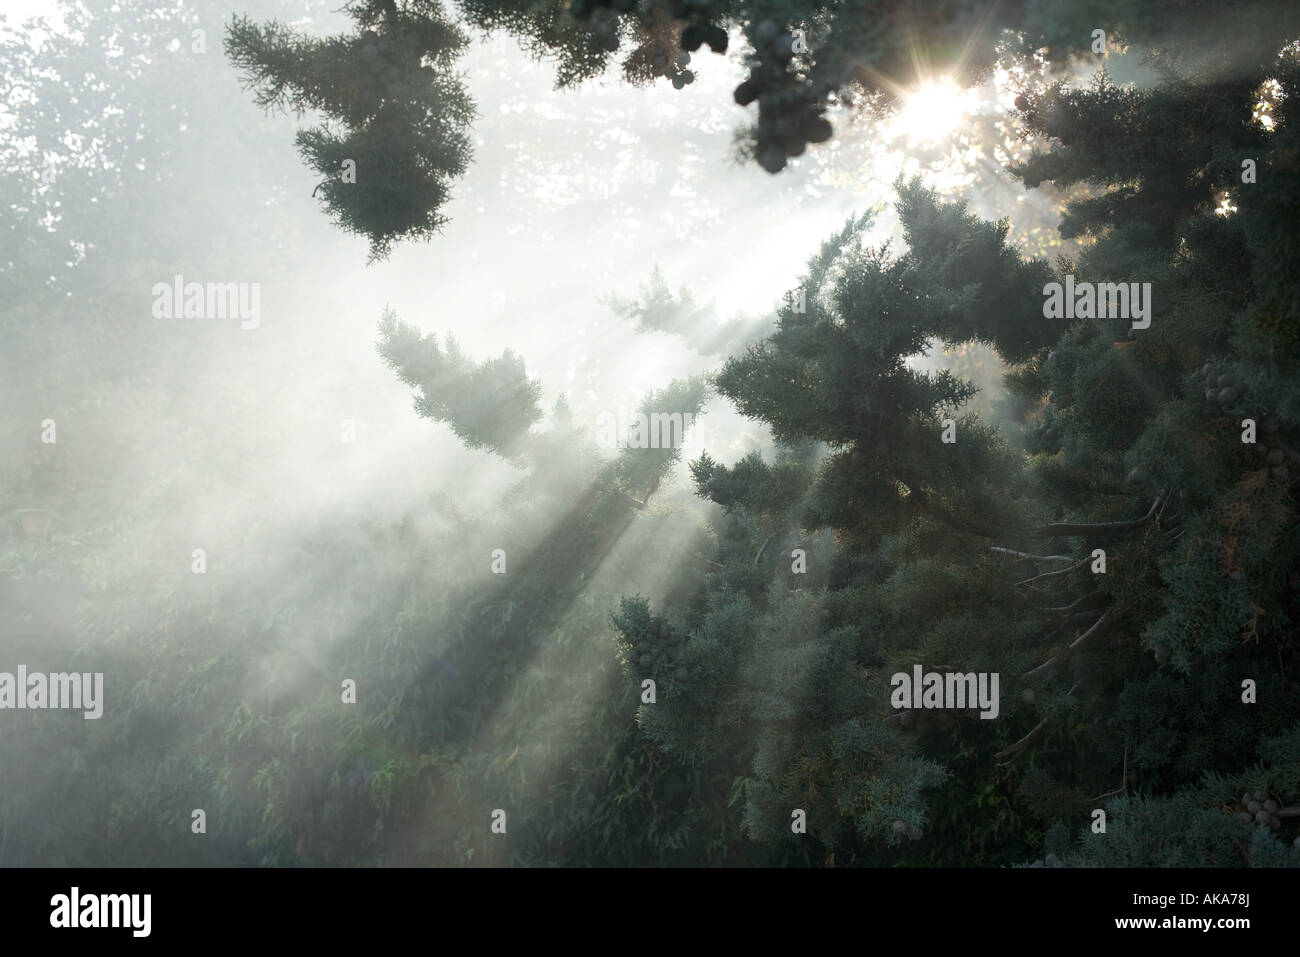 Beams of sunlight coming through tree branches - Stock Image